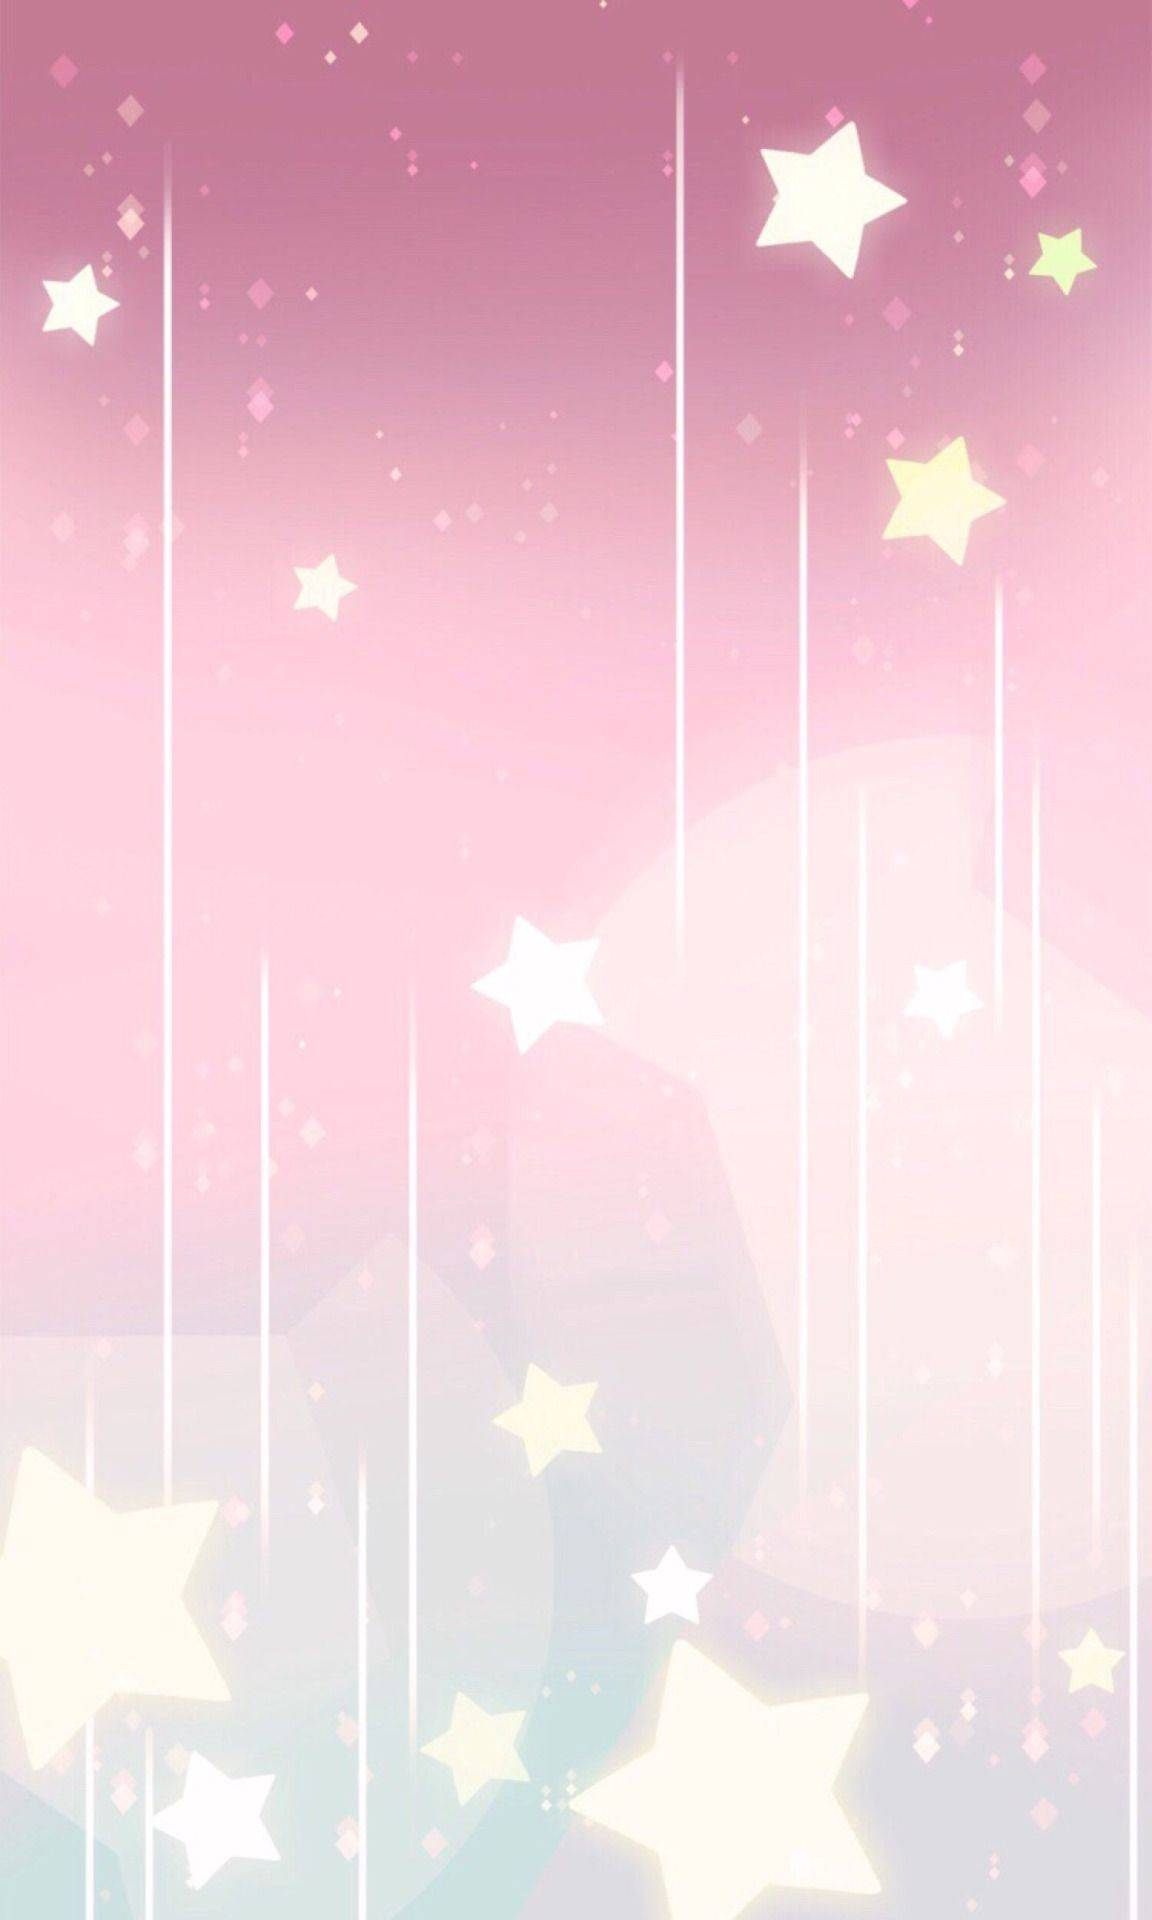 Pink Aesthetic Wallpaper Backgrounds Inspirational Pink Anime Aesthetic Wallpapers Posted by Michelle anderson